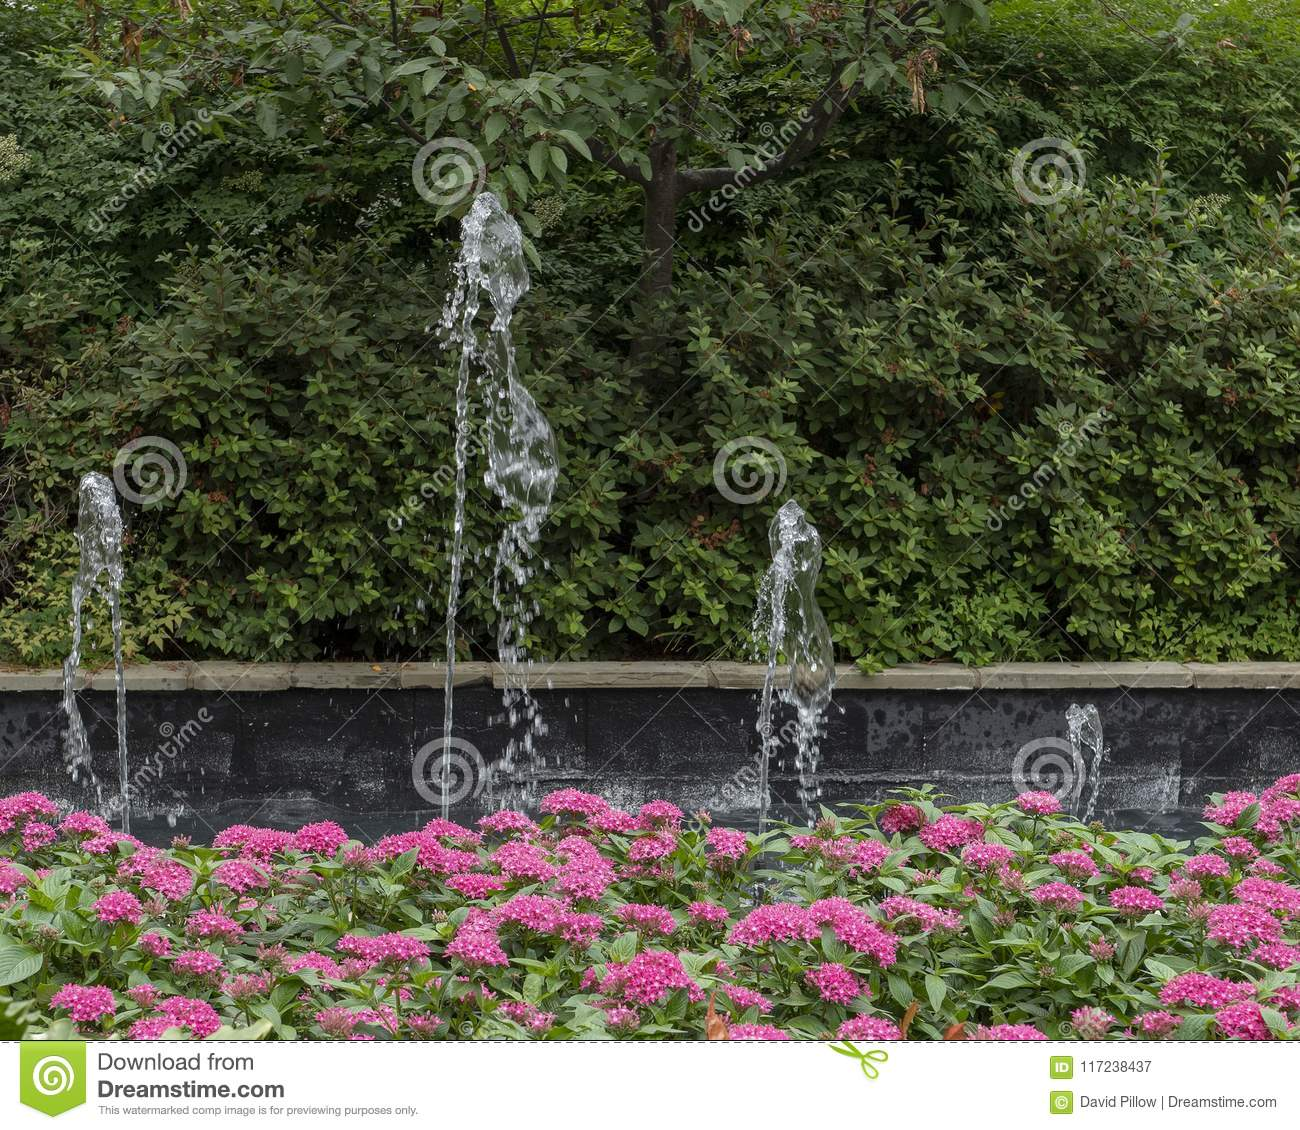 Download Colorful Flower Bed And Fountain In The Dallas Arboretum And  Botanical Garden Stock Image